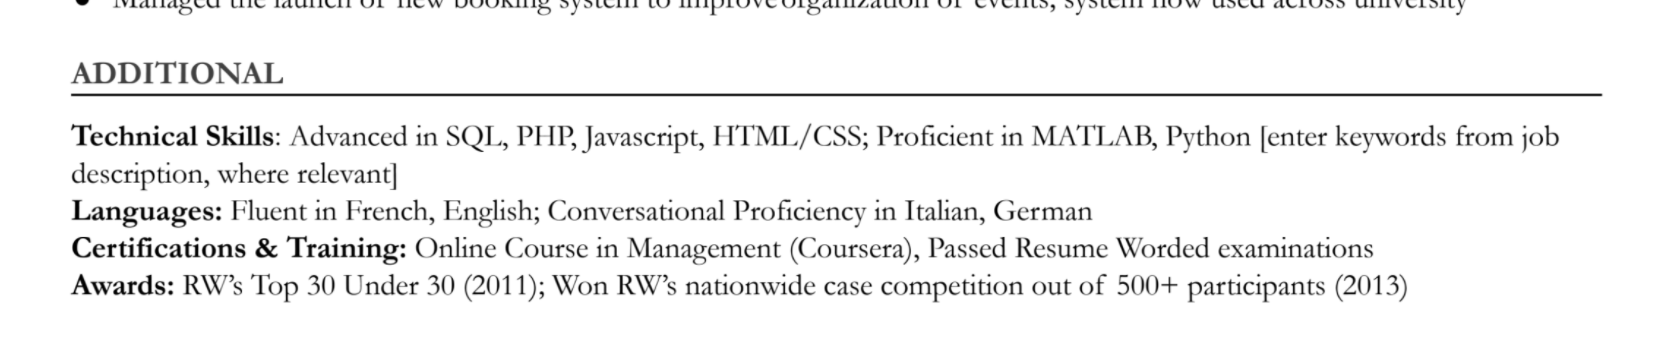 This resume lumps the candidate's technical skills, languages spoken, certificates, and awards into a single section